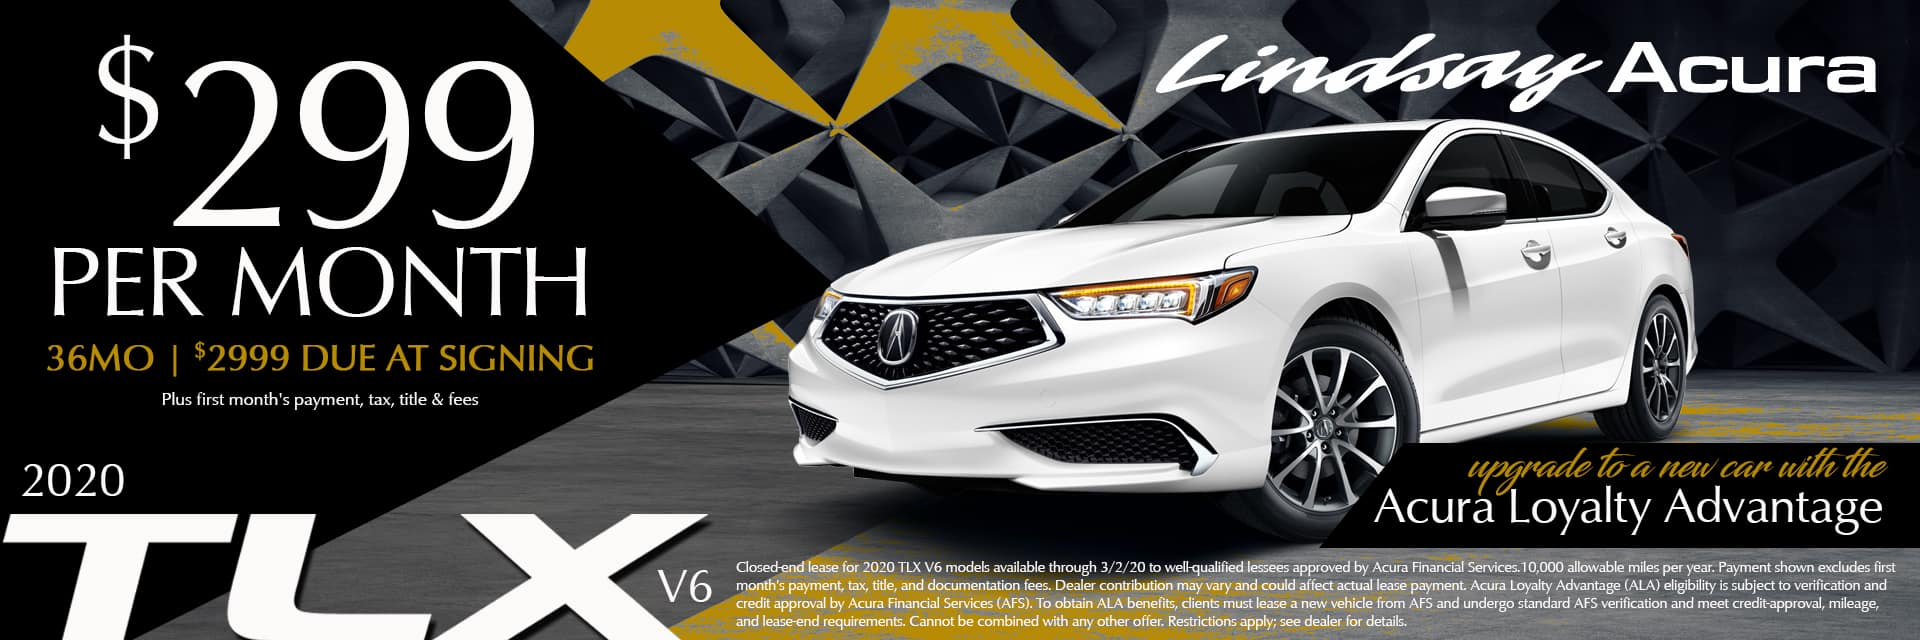 2020 TLX Special